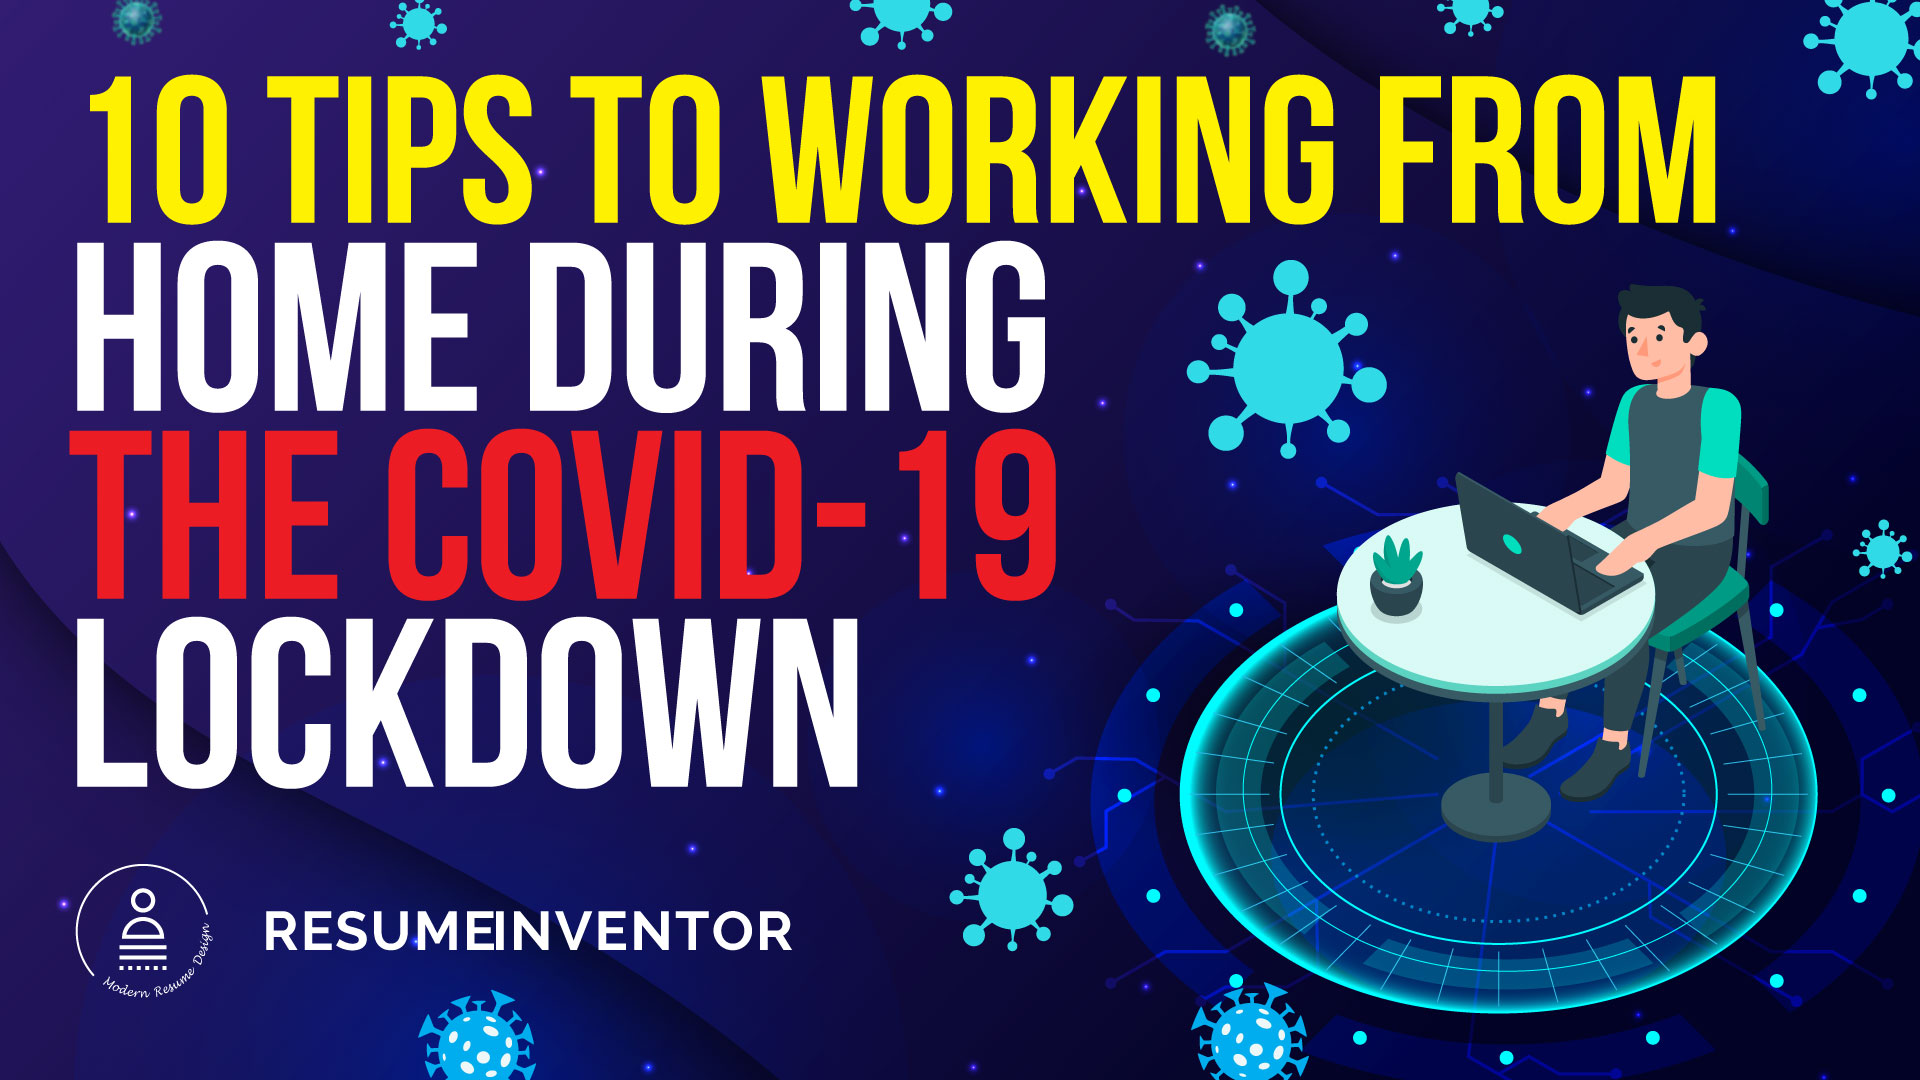 10-tips-to-working-from-home-during-the-COVID-19-lockdown